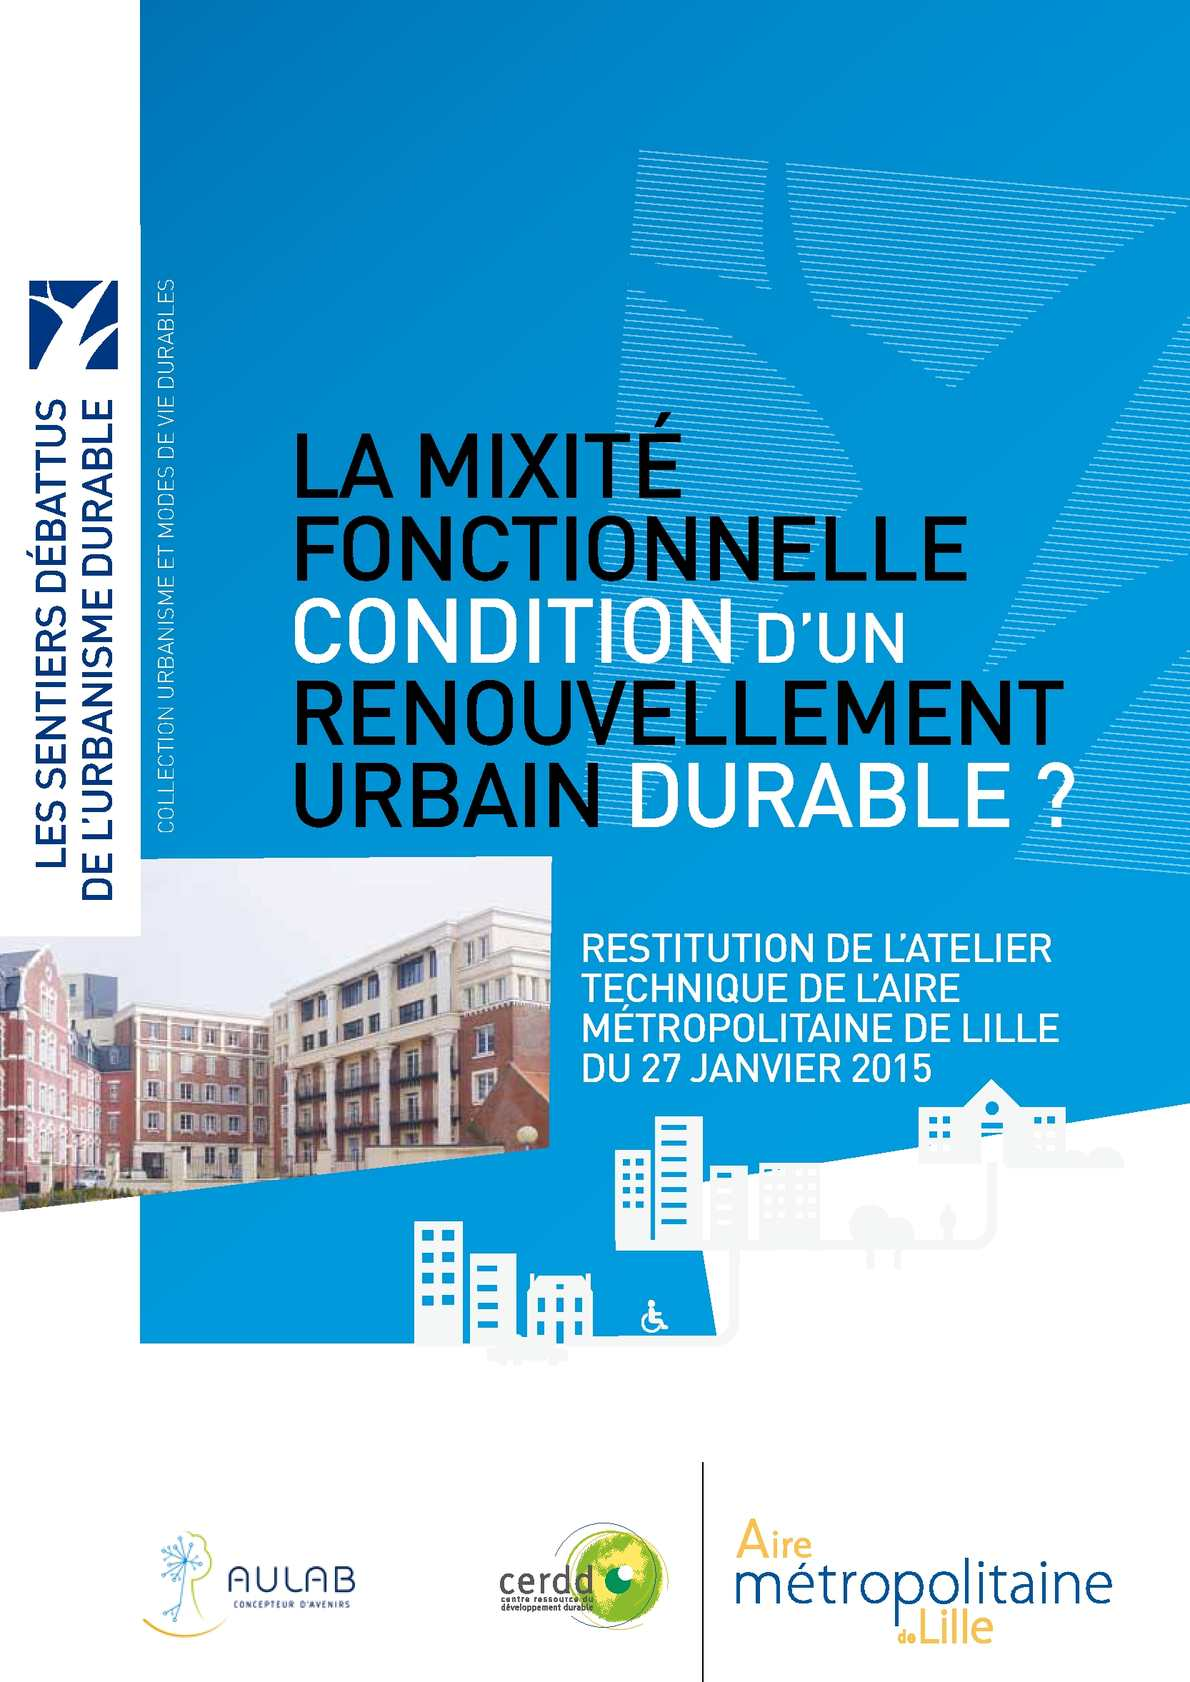 Amenagement Exterieur Def Amenagement Exterieur Definition Technologie